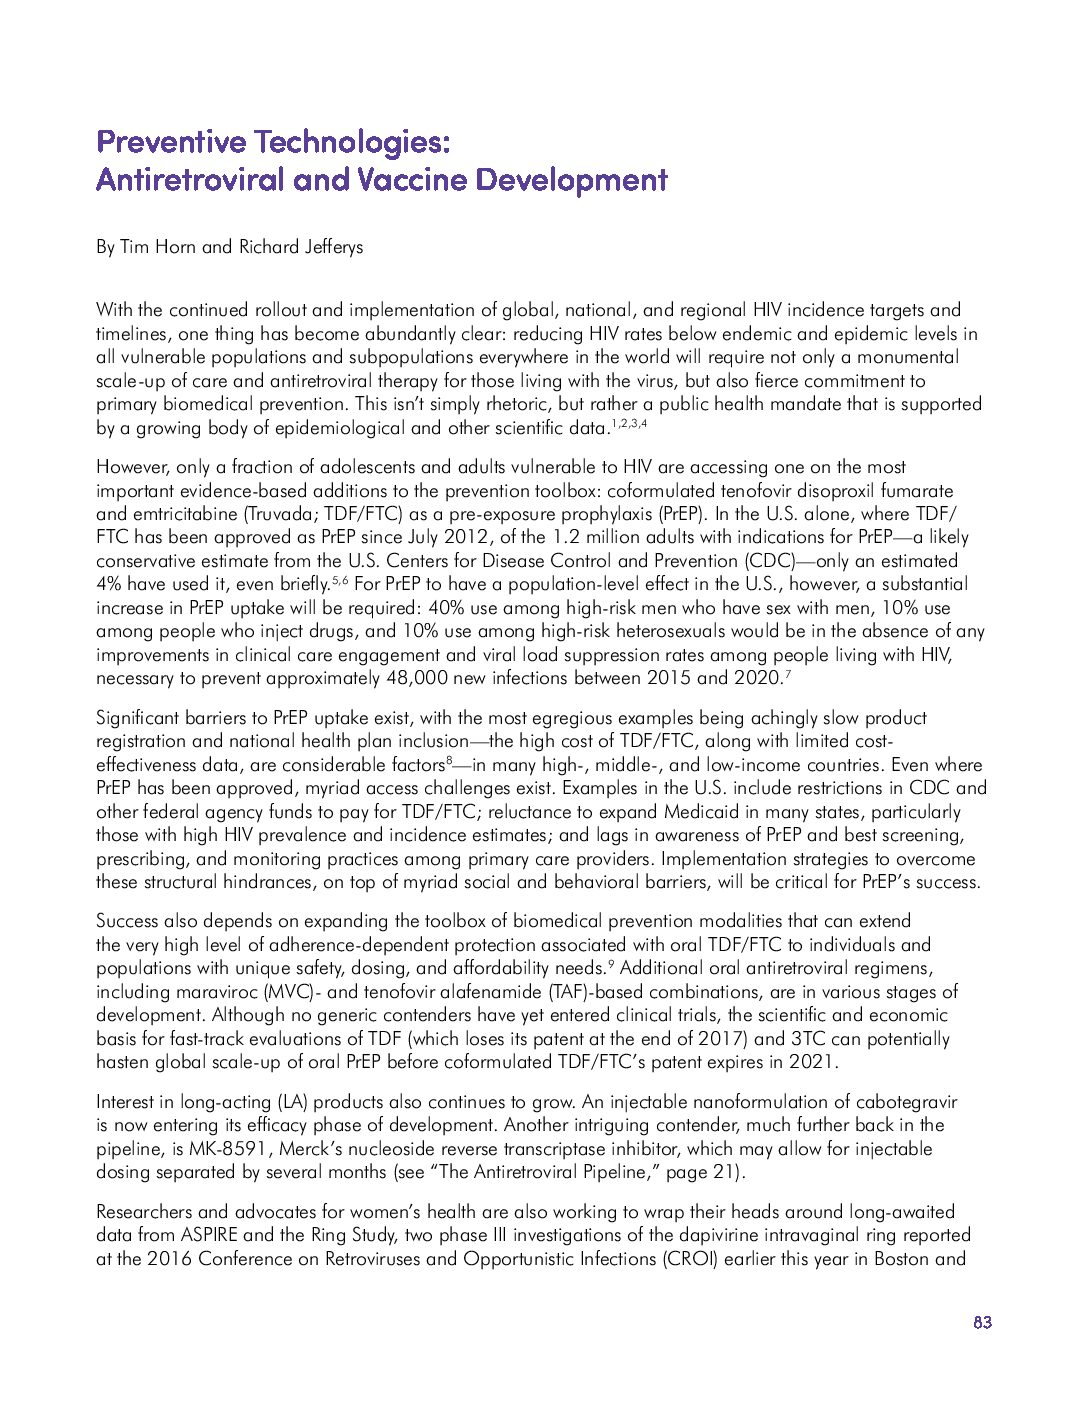 Preventive Technologies: Antiretroviral and Vaccine Development